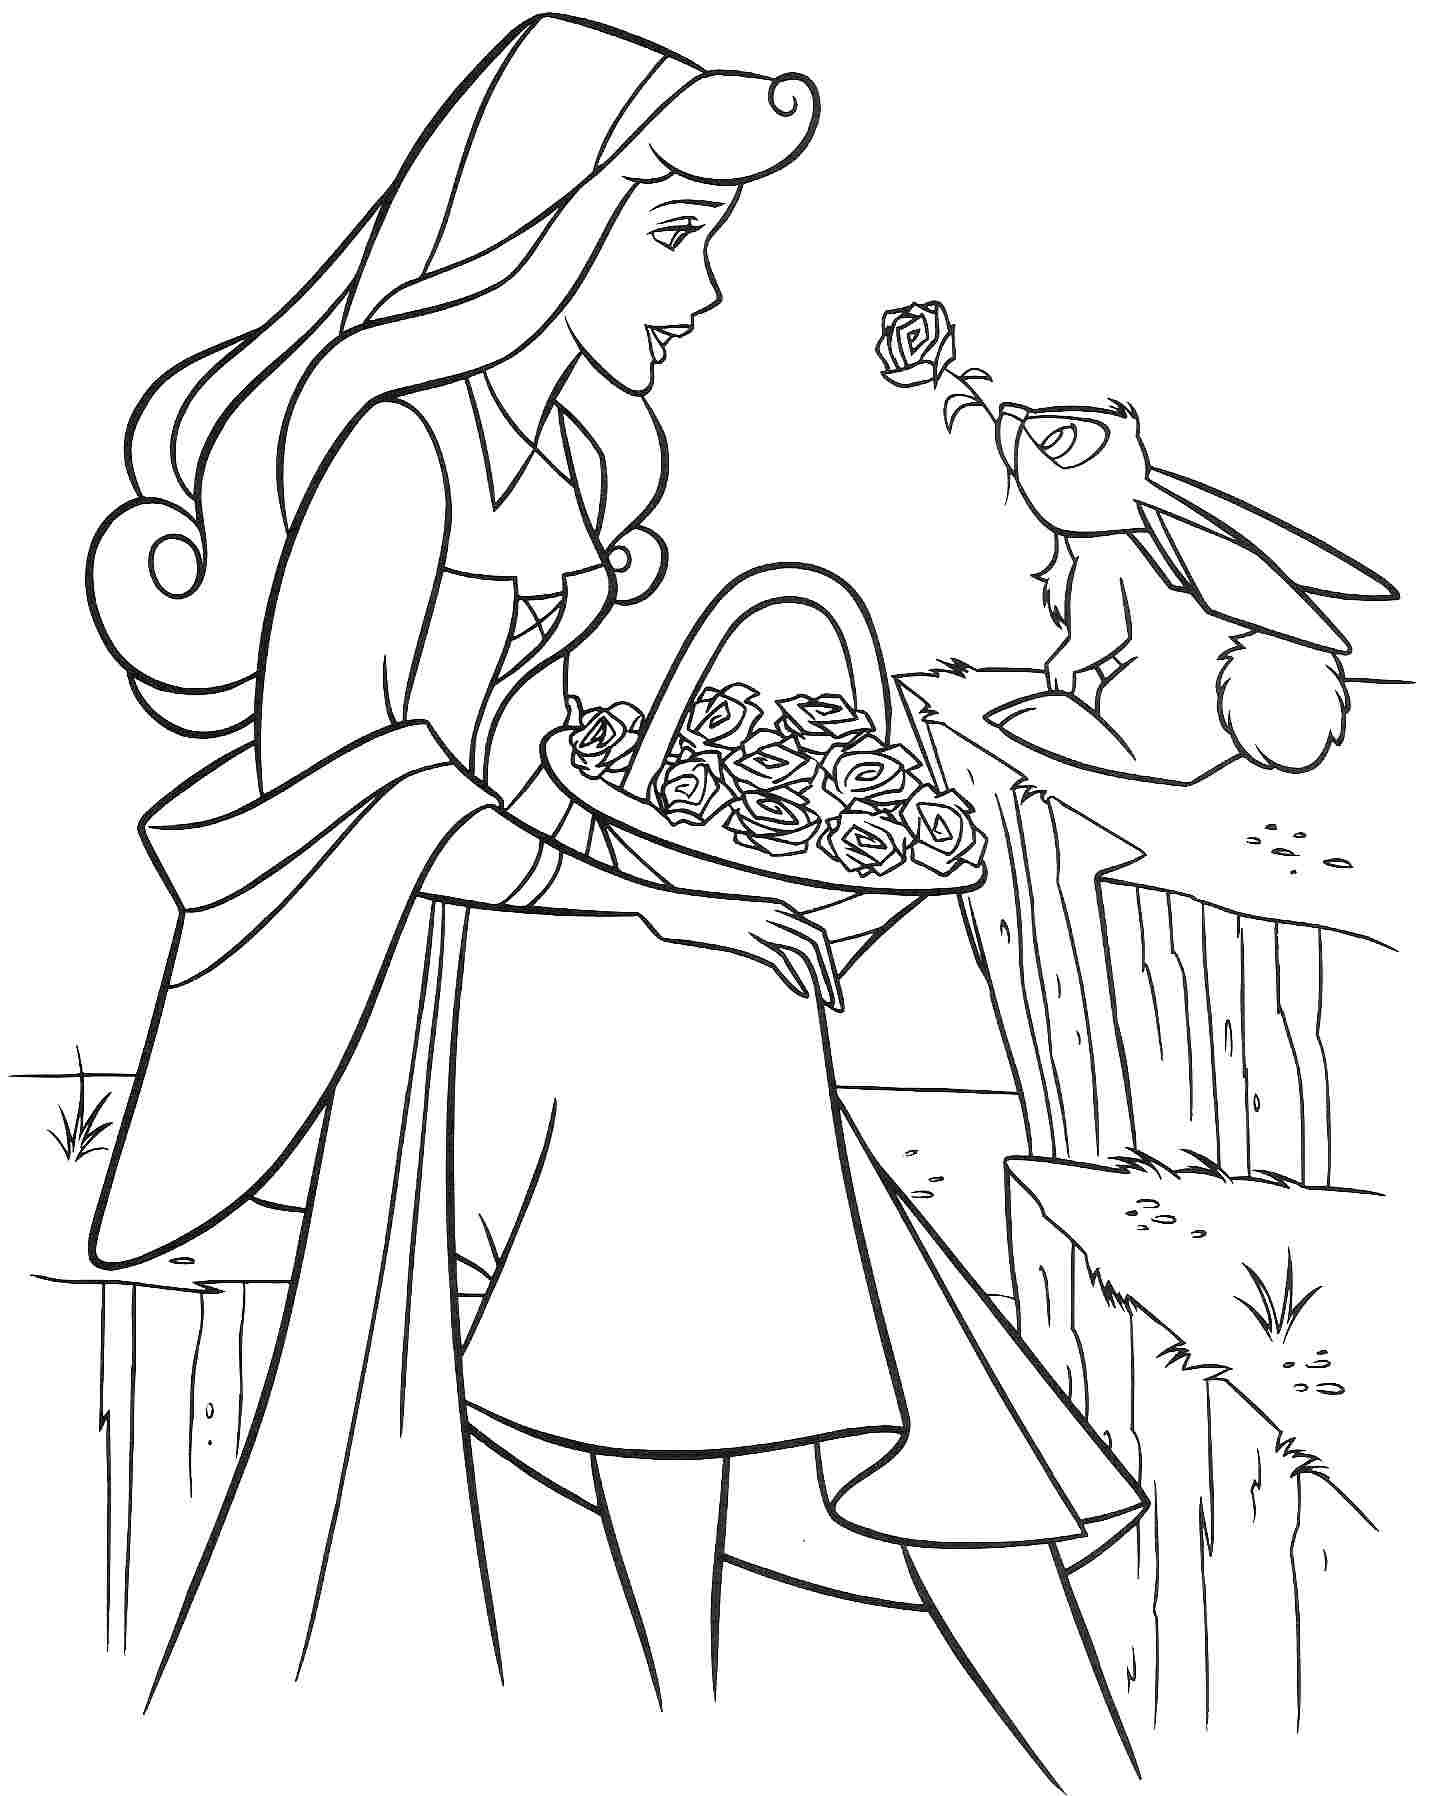 coloring sleeping baby coloring pages for download coloring sleeping